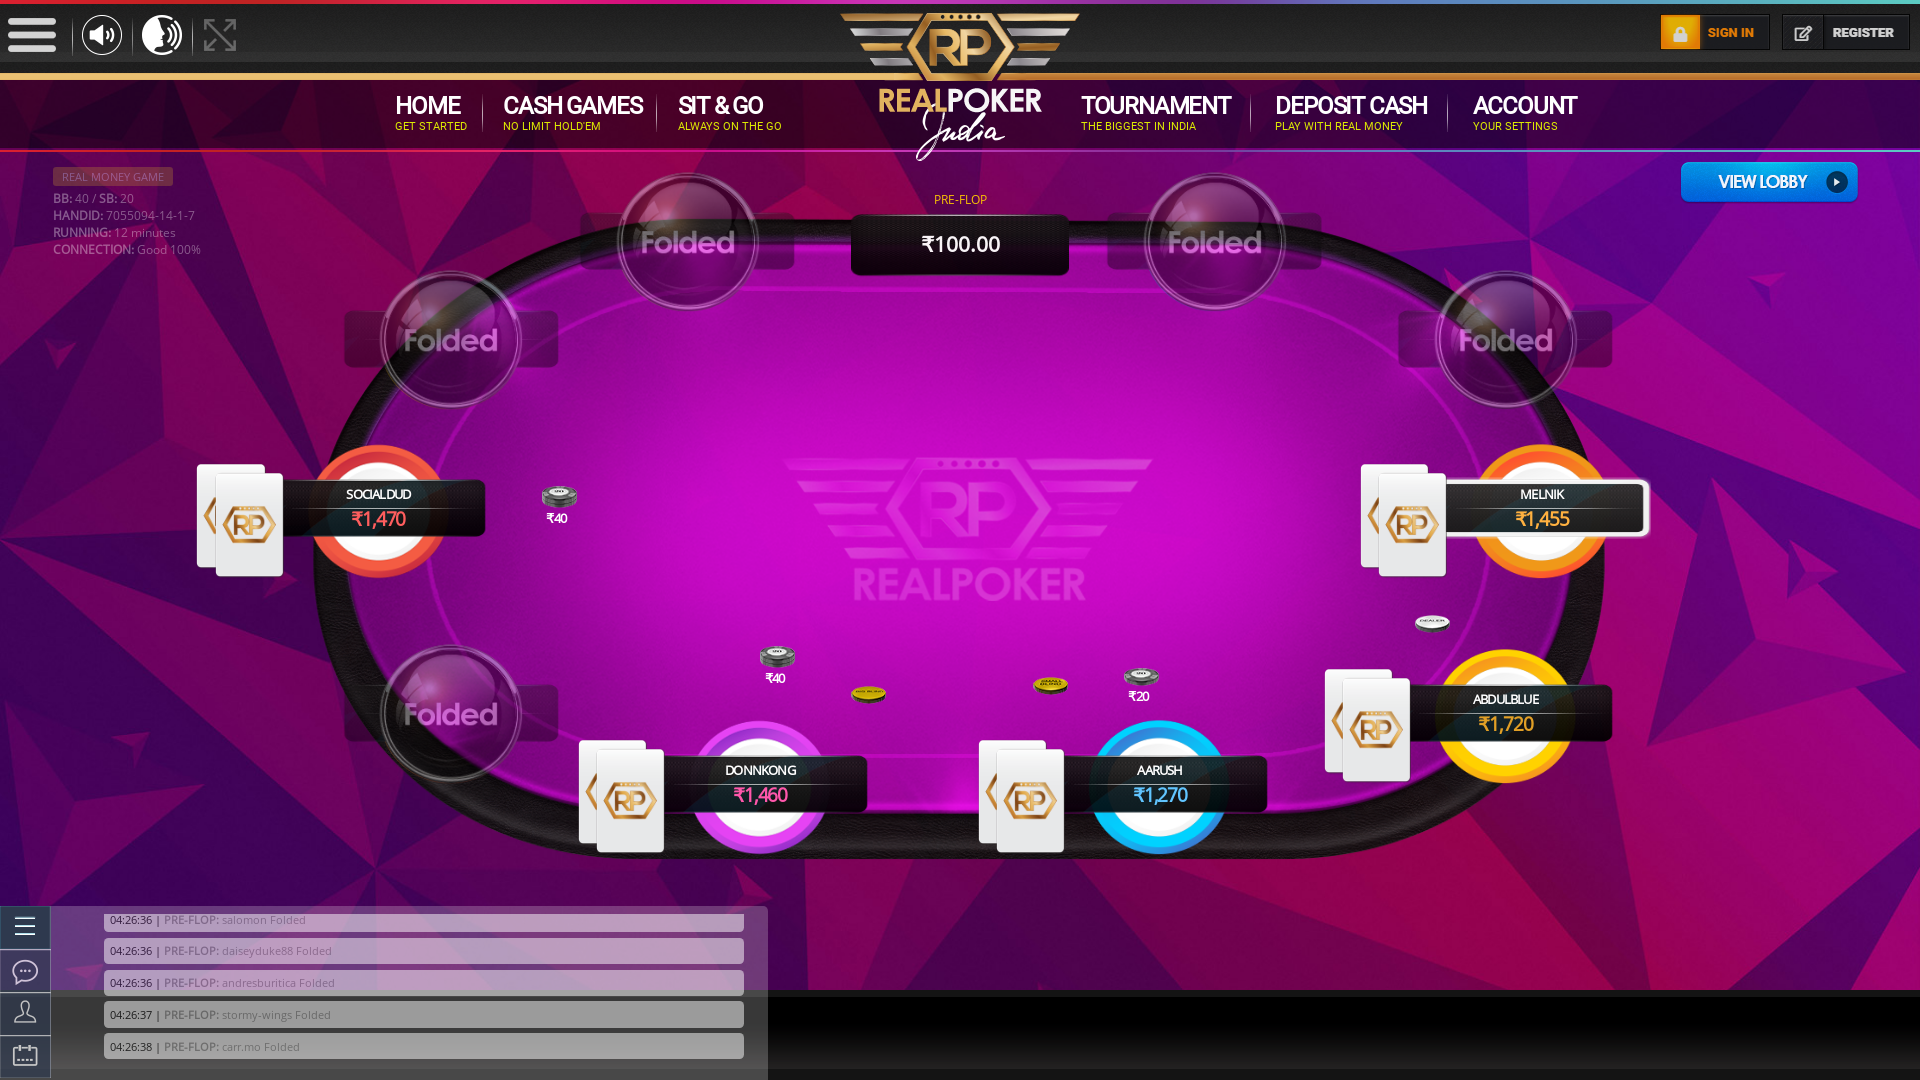 Rajendra Nagar, New Delhi Play Poker from 2nd April